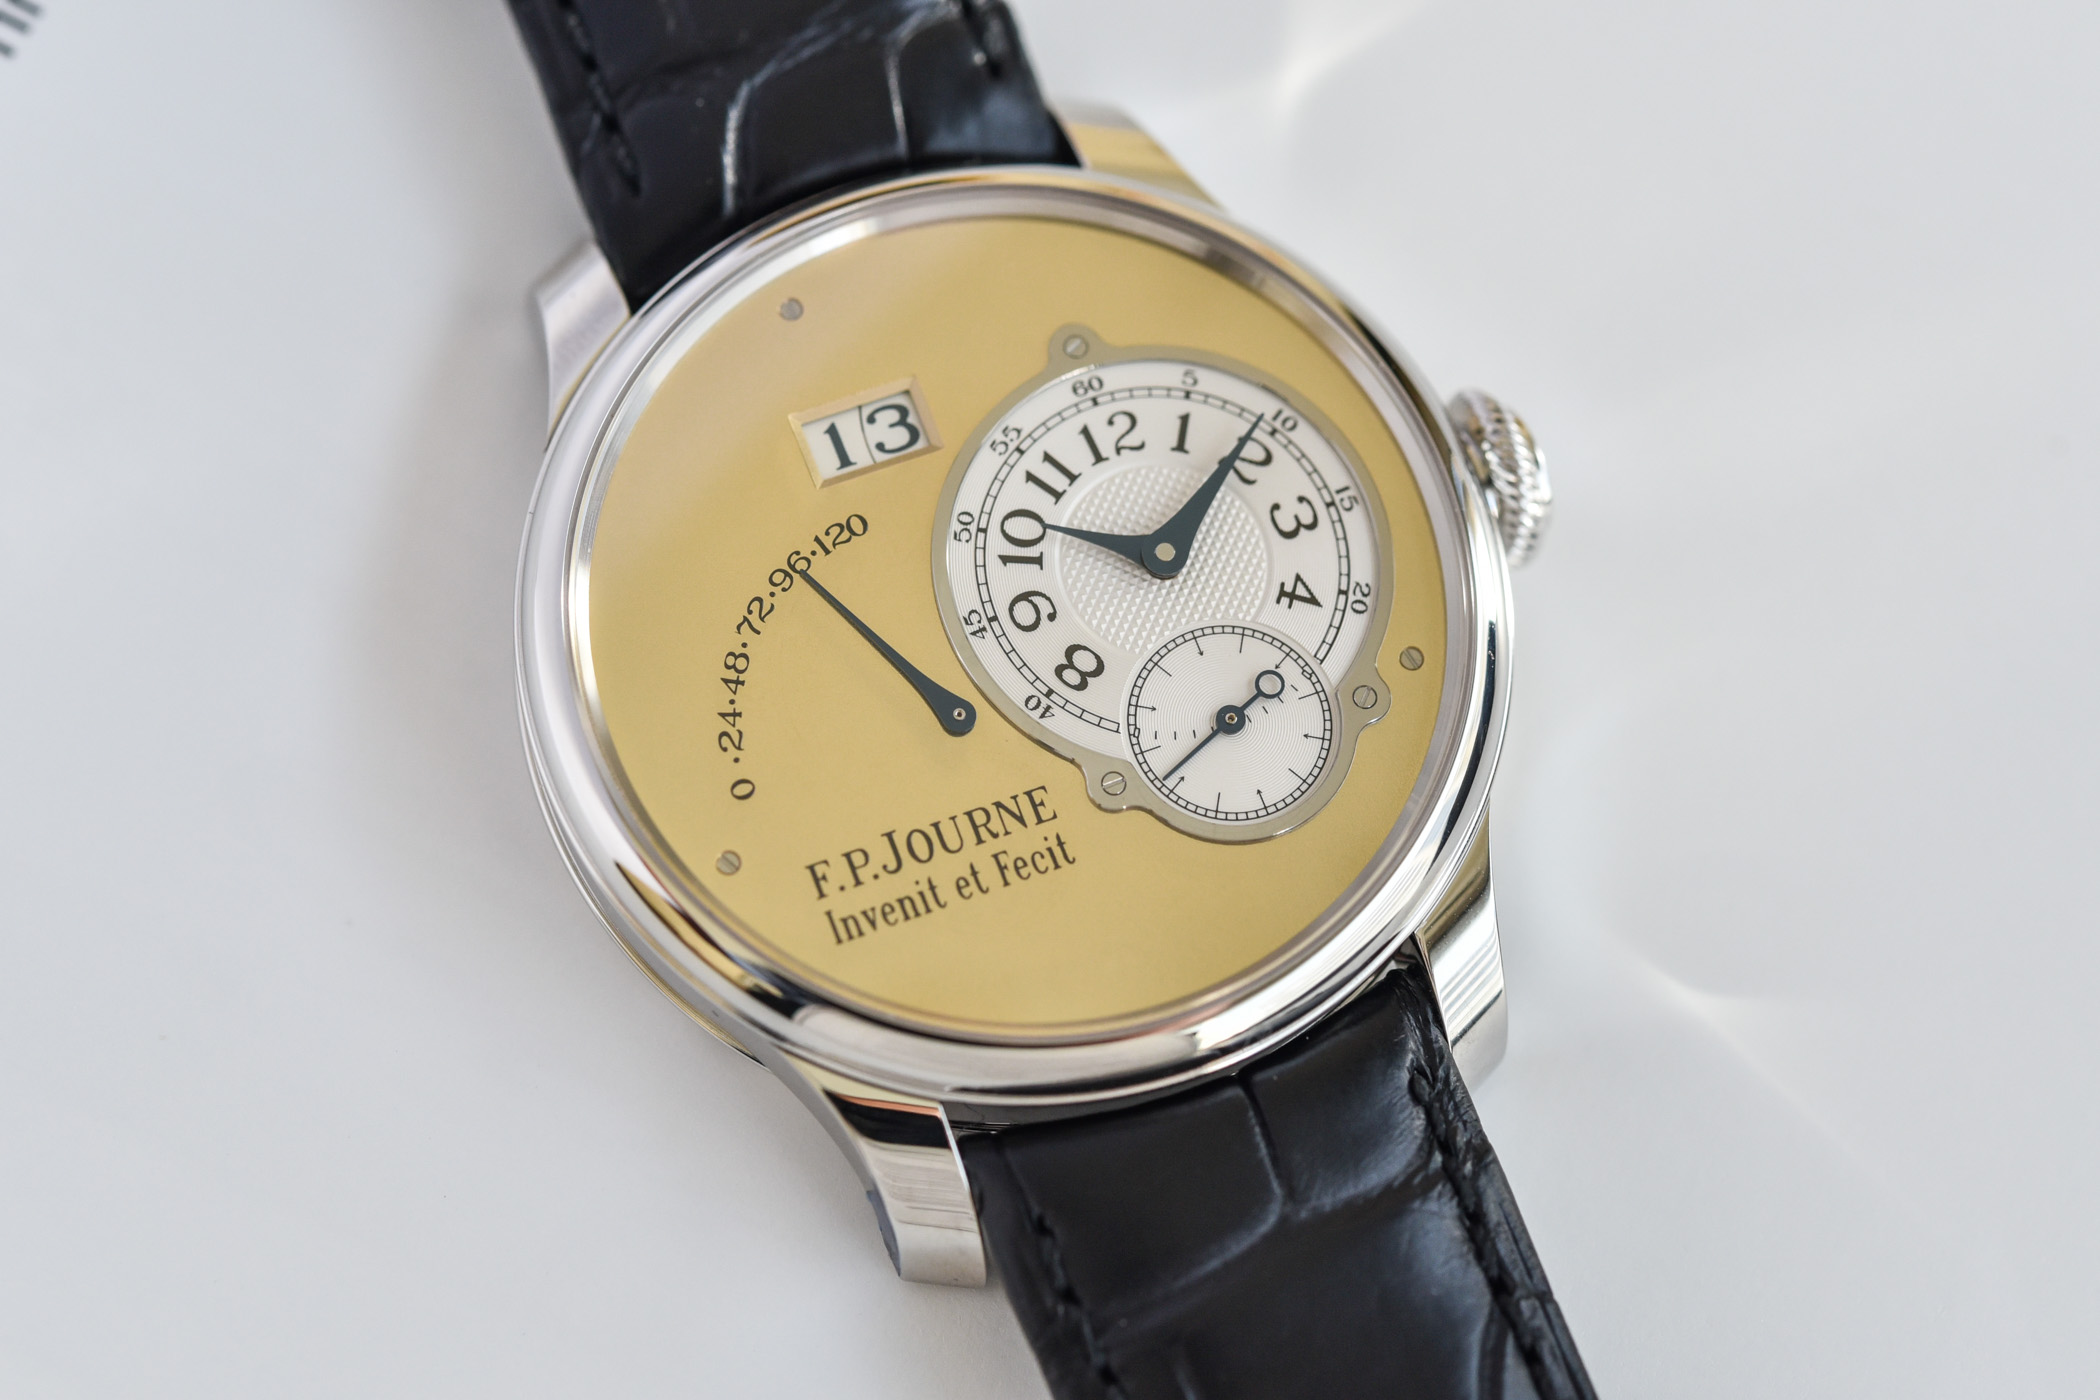 FP Journe Automatique Limited Edition 20th anniversary Octa - review - 12